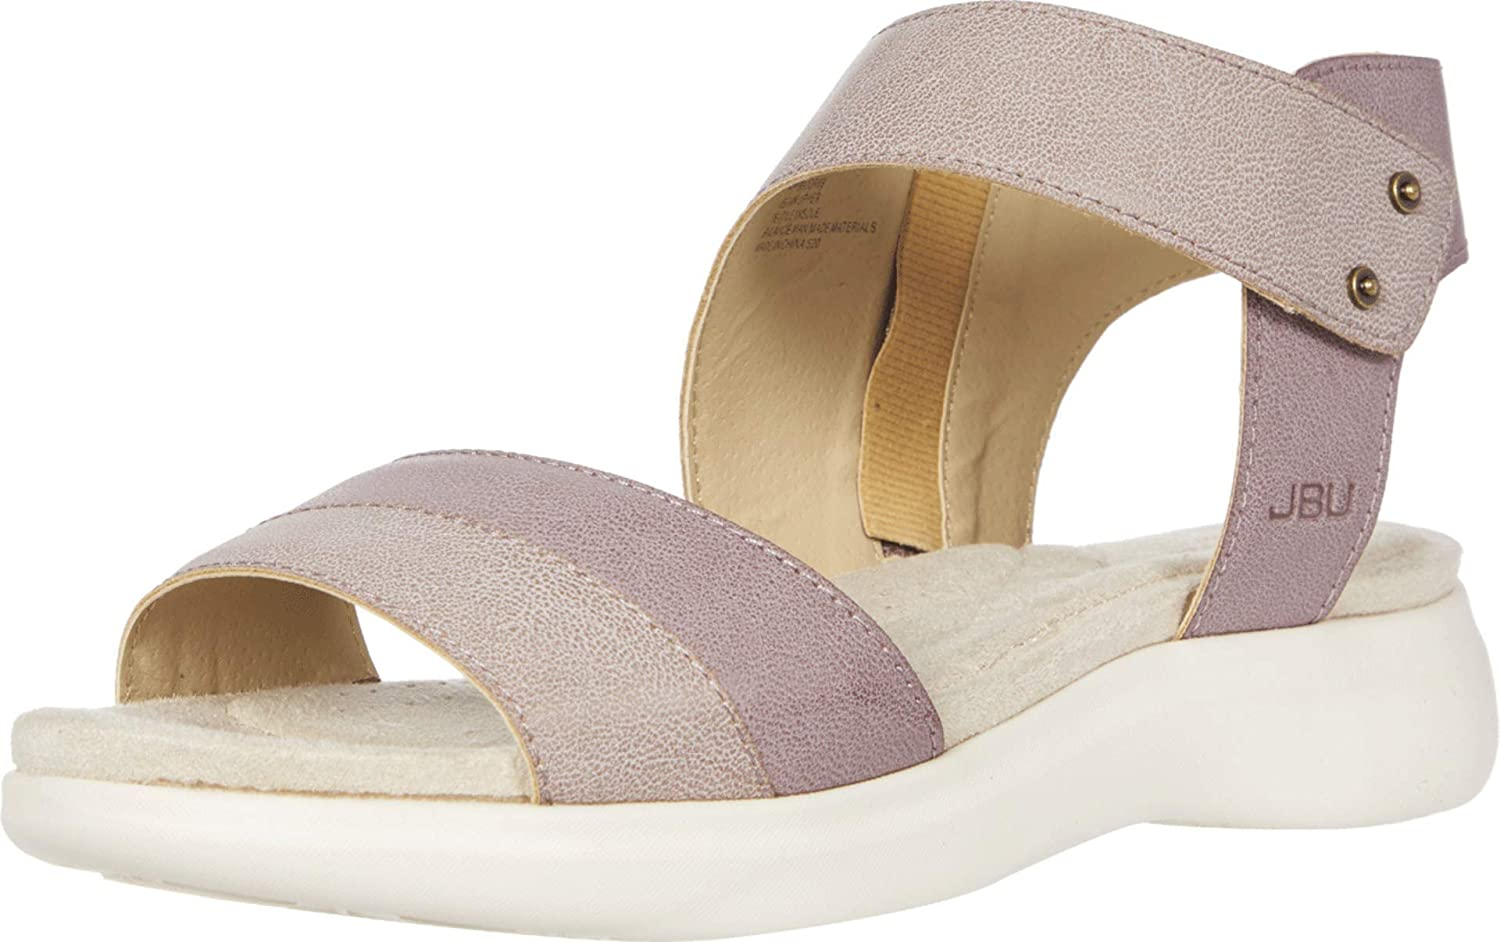 JBU by Jambu Women's Doris Flat Sandal